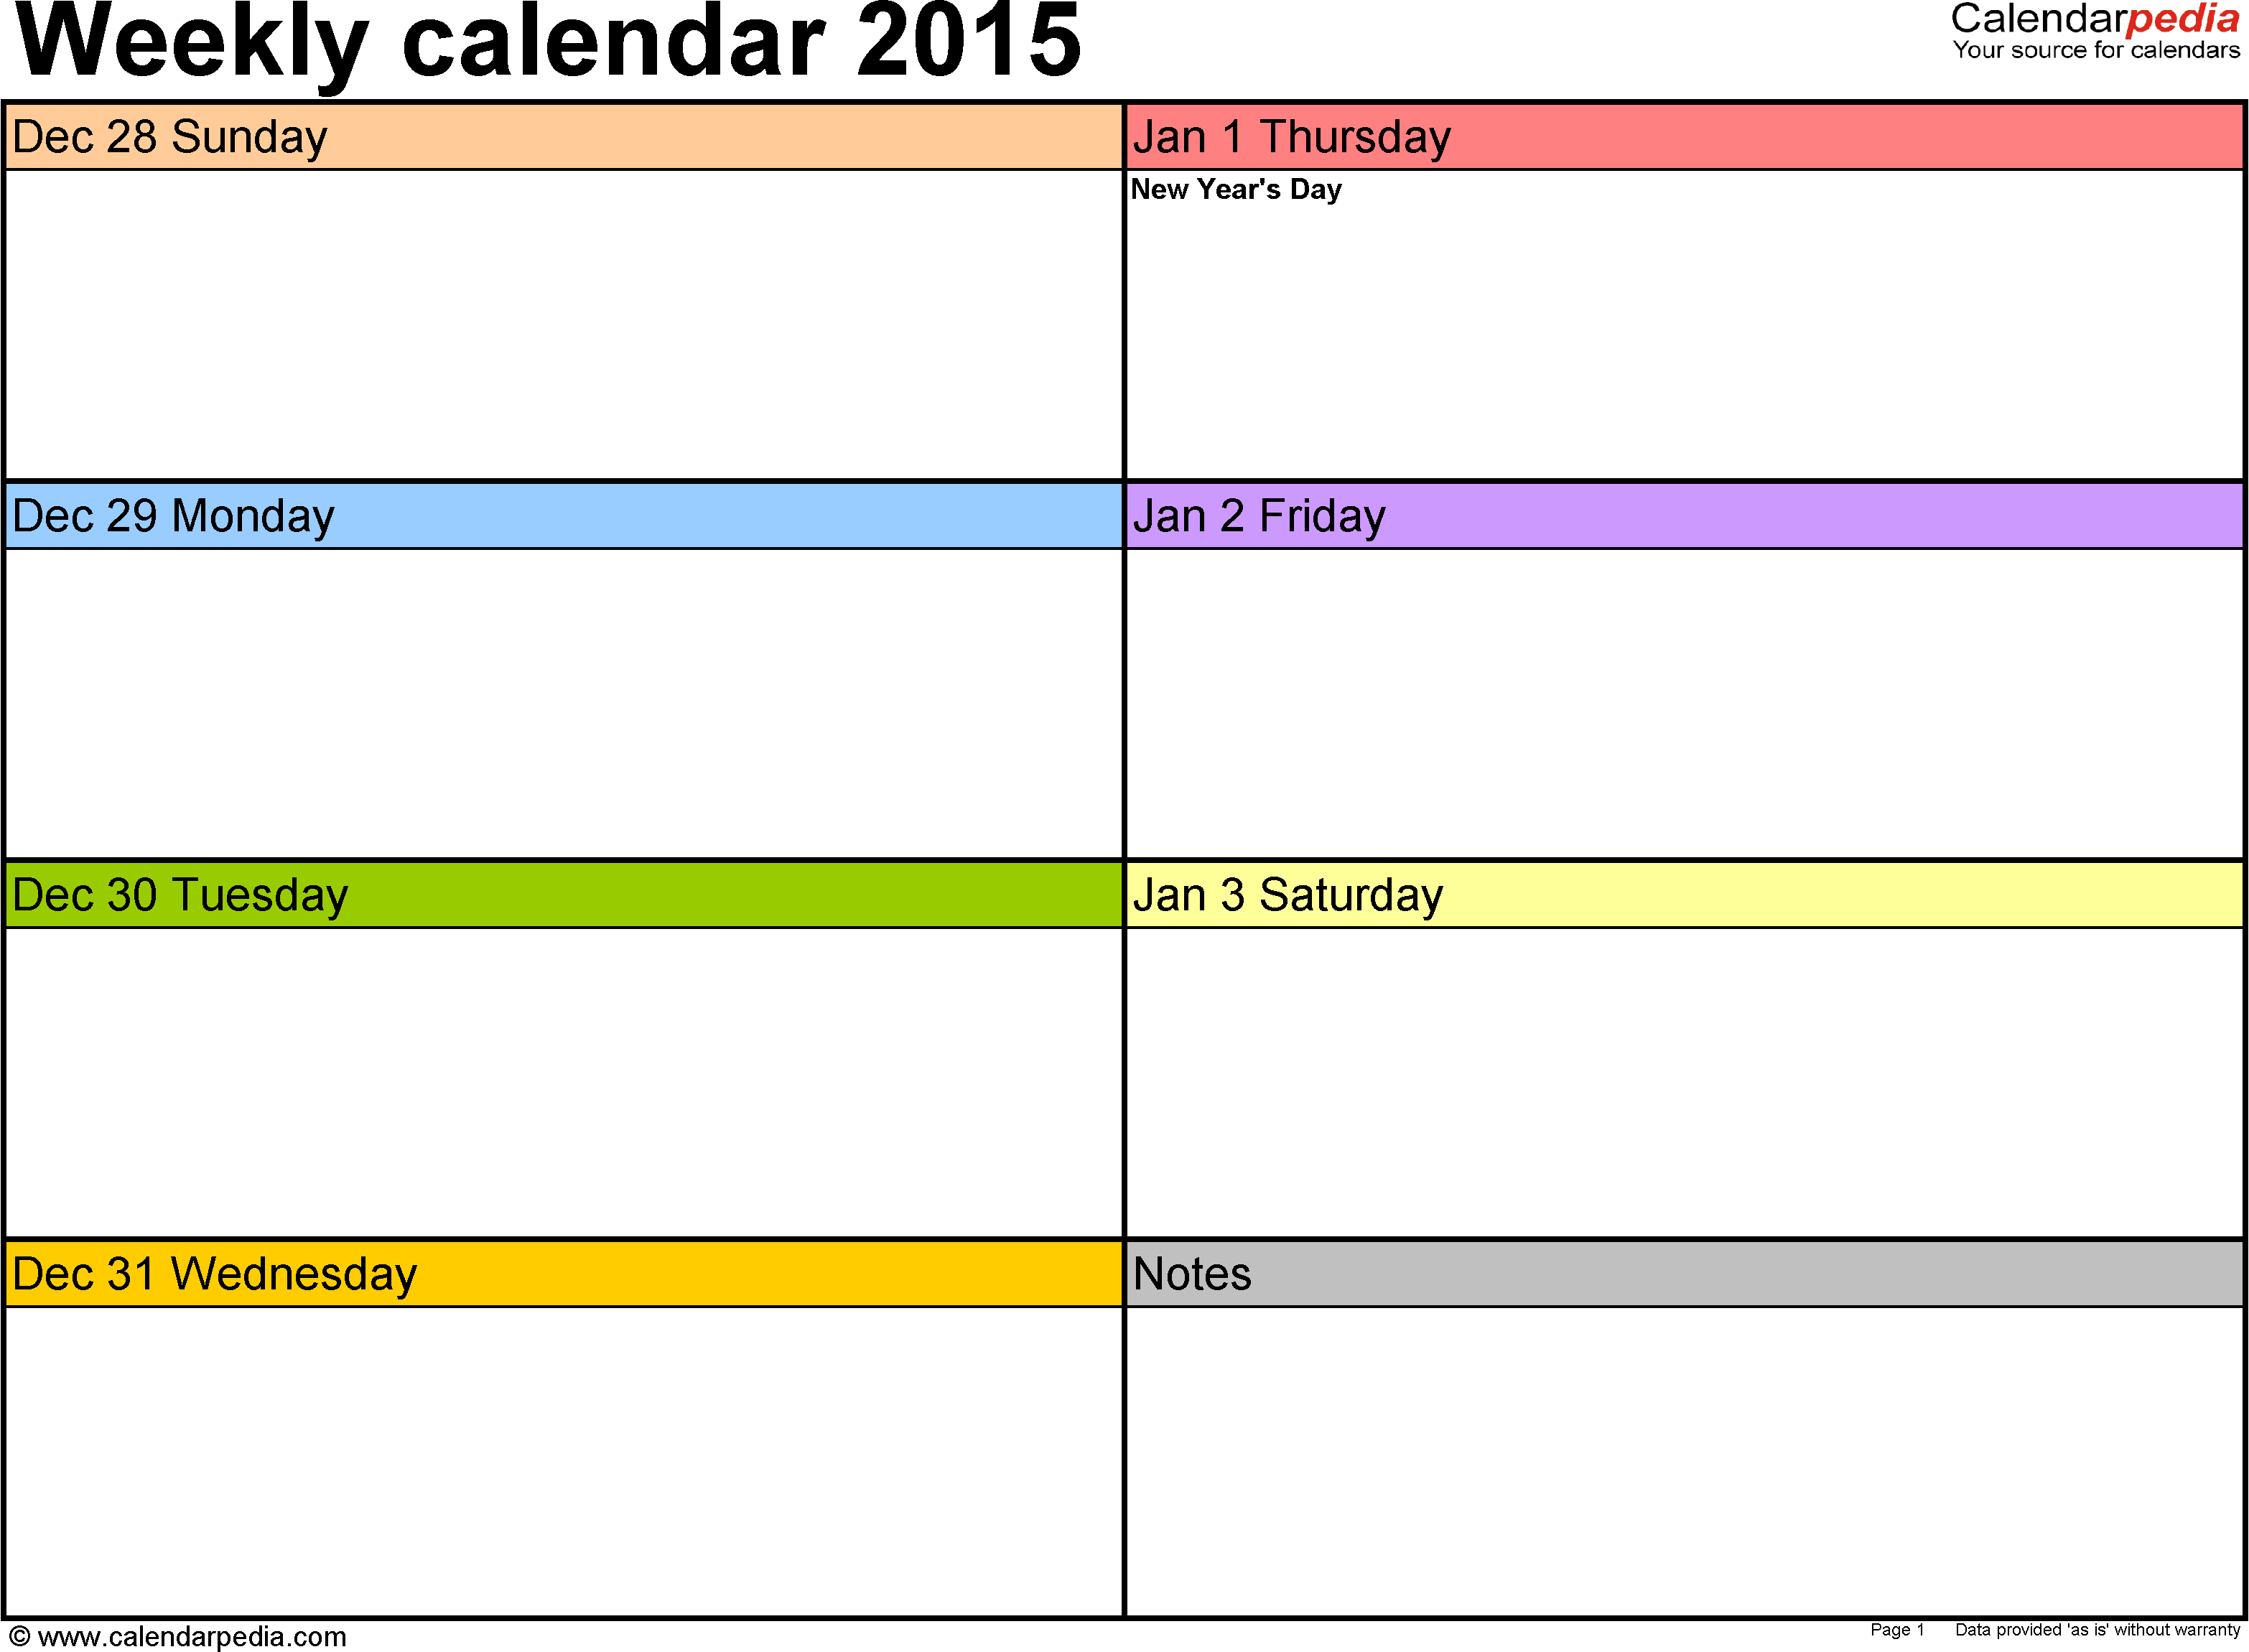 weekly calendar 2015 template for word version 6 landscape 53 pages in